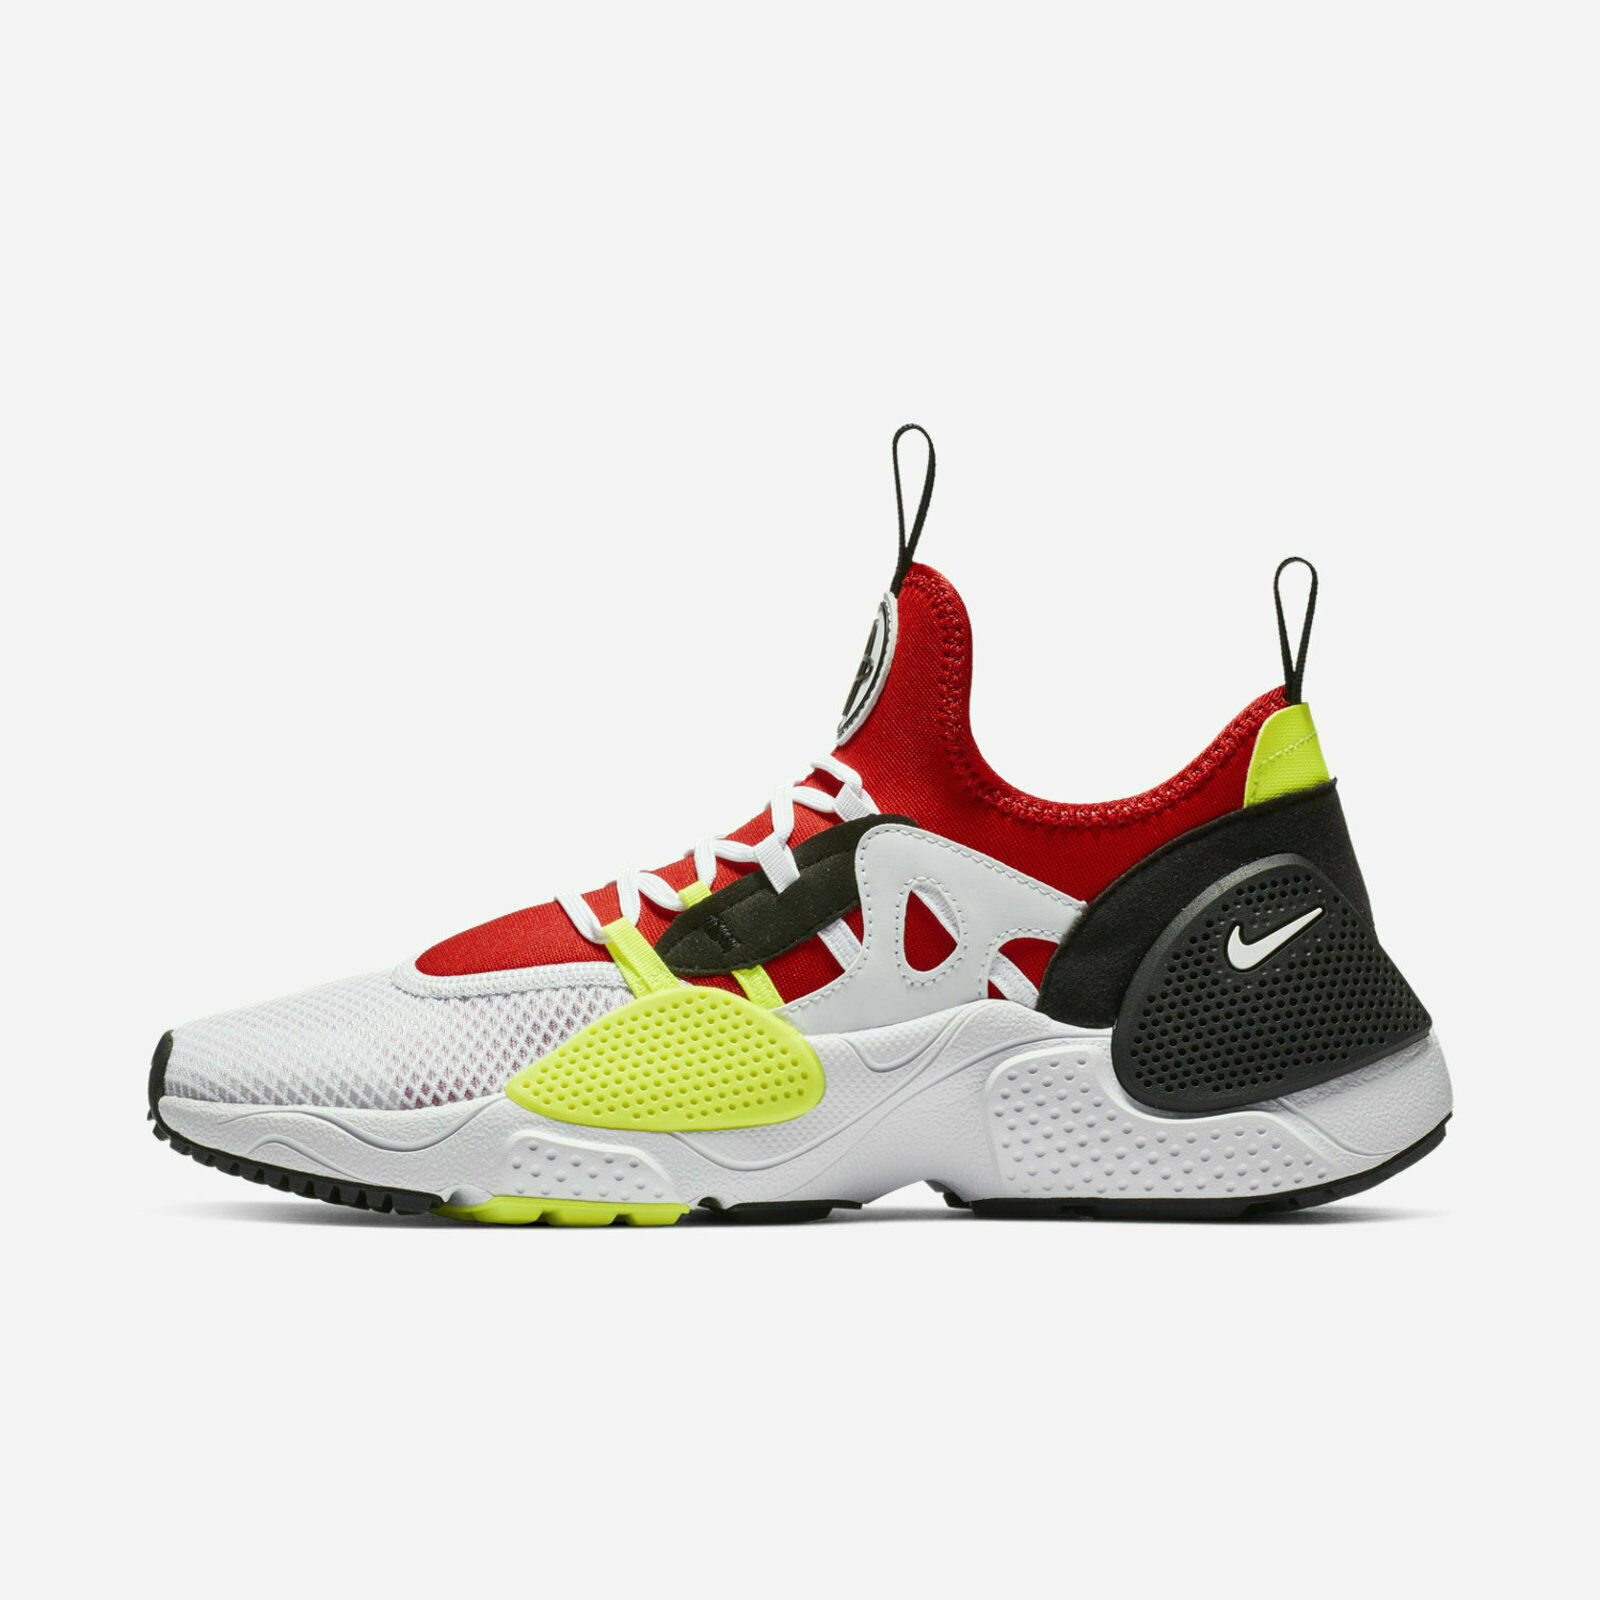 New Nike Men's Huarache E.D.G.E TXT shoes (AO1697-100) White University Red-Volt